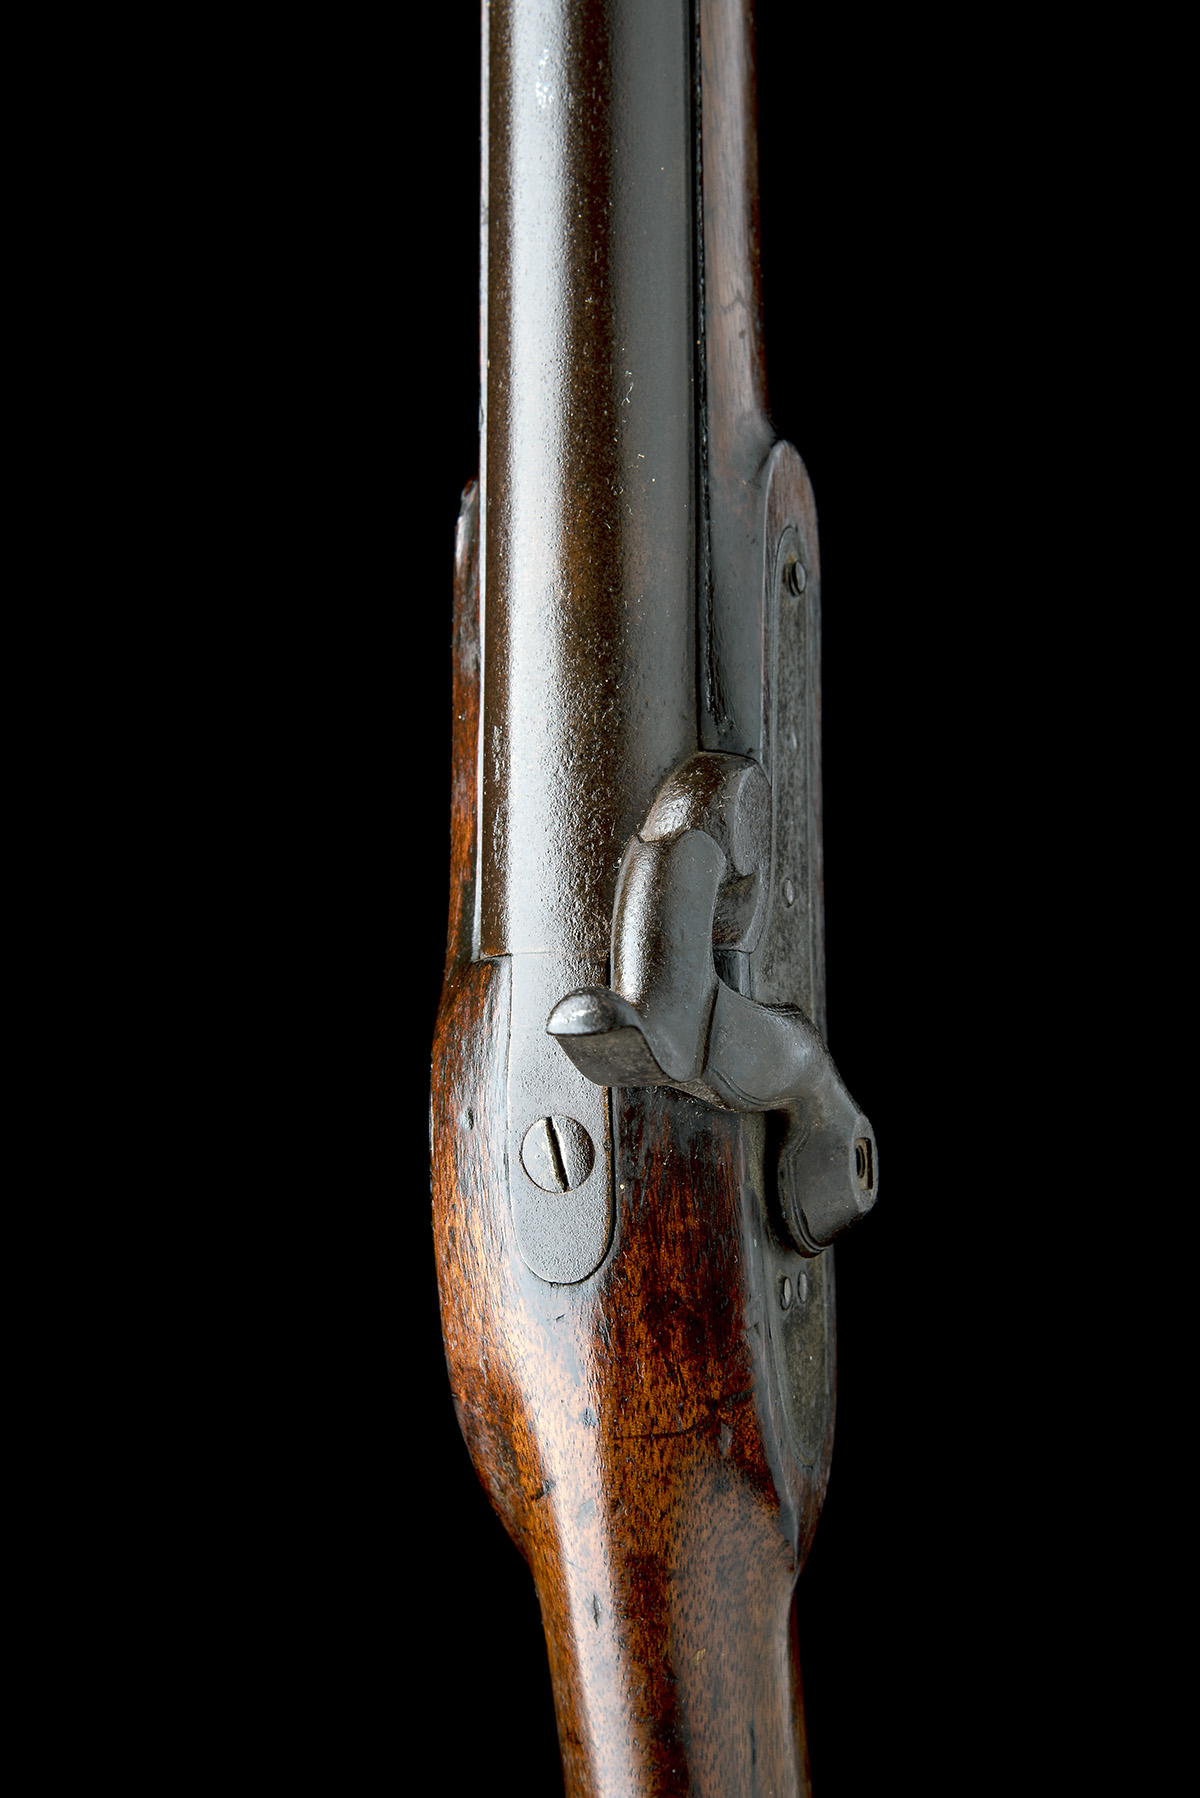 LACY & CO, LONDON A .750 PERCUSSION CARBINE, MODEL 'PATTERN '42 CONSTABULARY CARBINE', no visible - Image 4 of 8